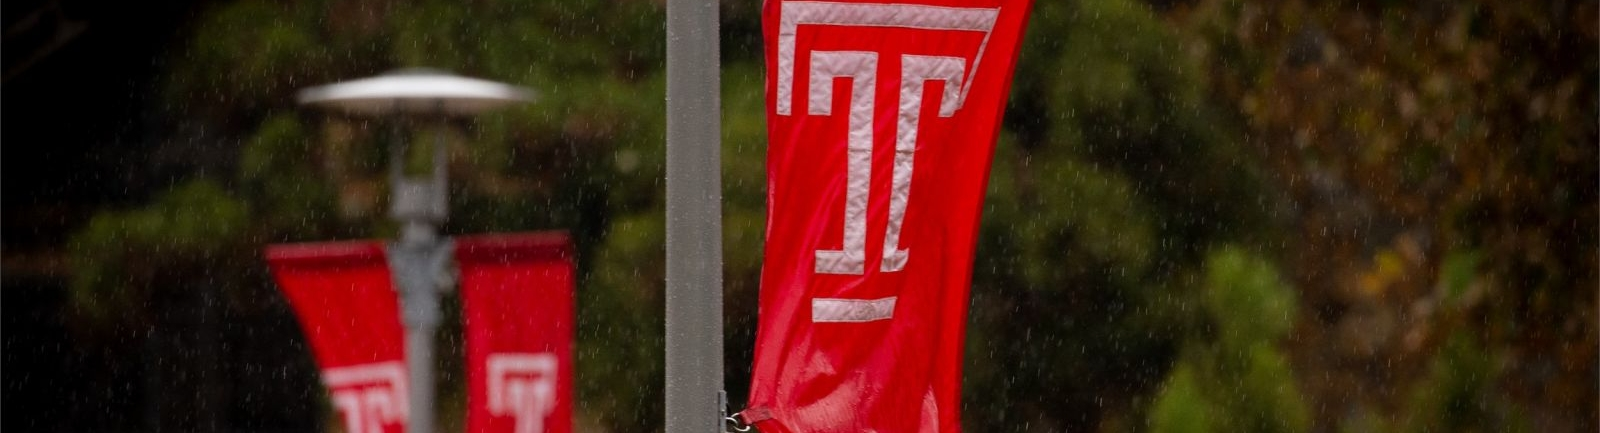 Temple University banners brave the wind and rain to provide school spirit.